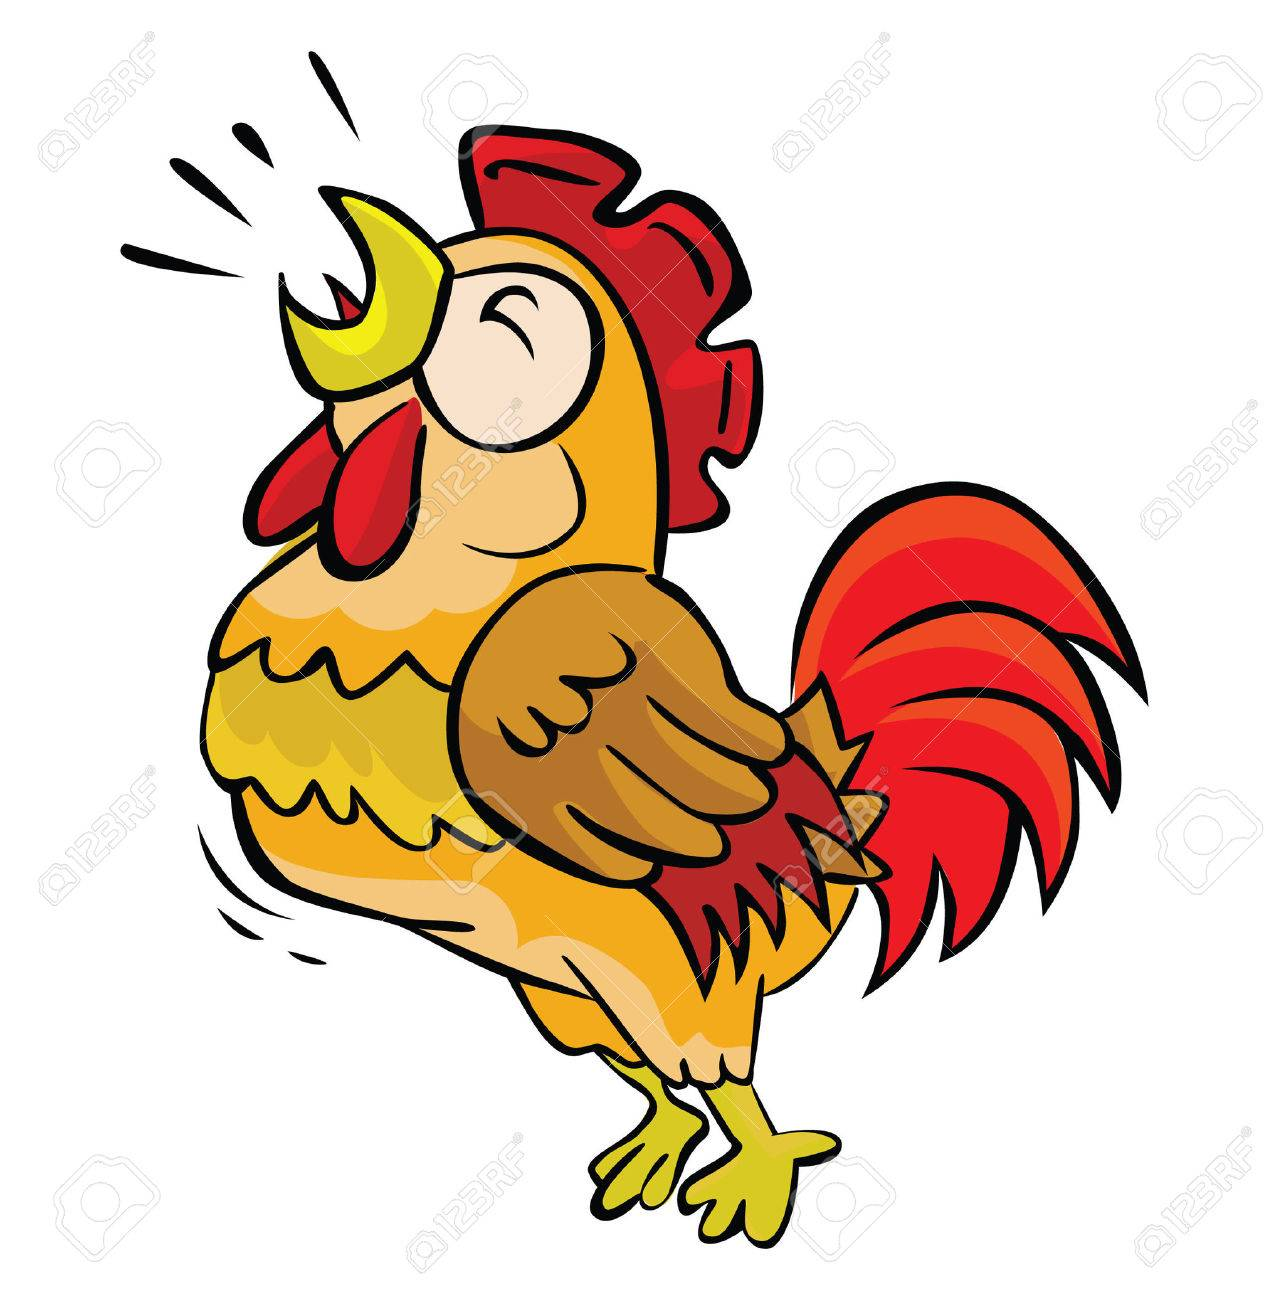 Roosters clipart » Clipart Station.